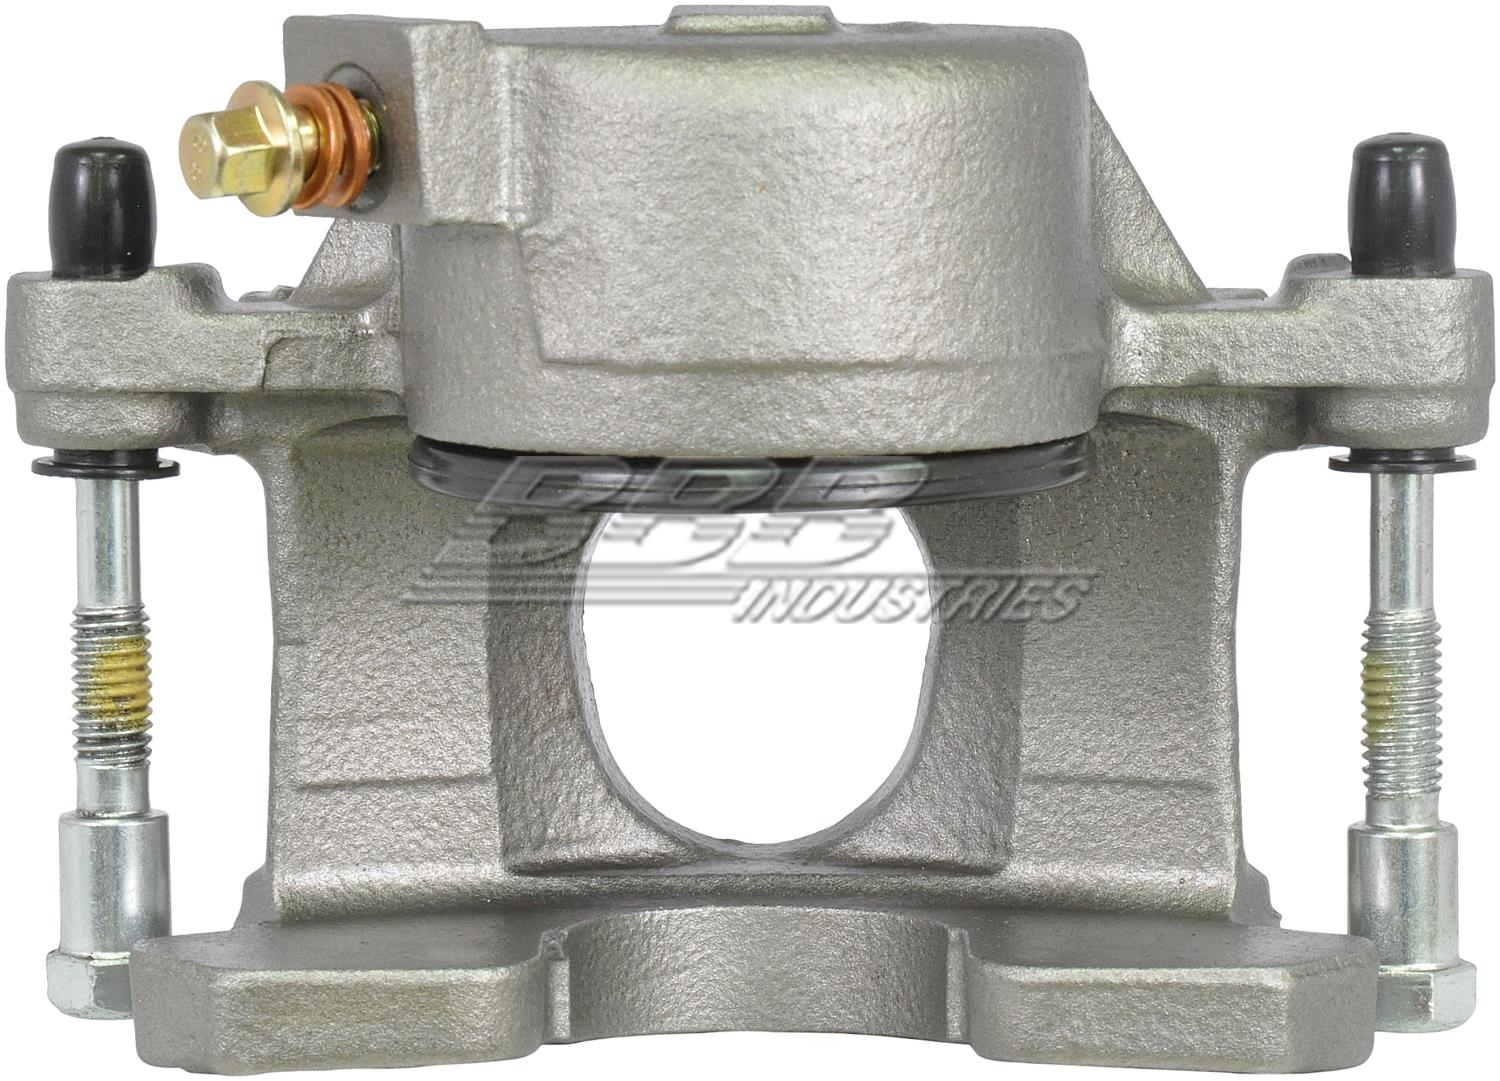 BBB INDUSTRIES - Reman Caliper w/ Installation Hardware - BBA 97-17821A